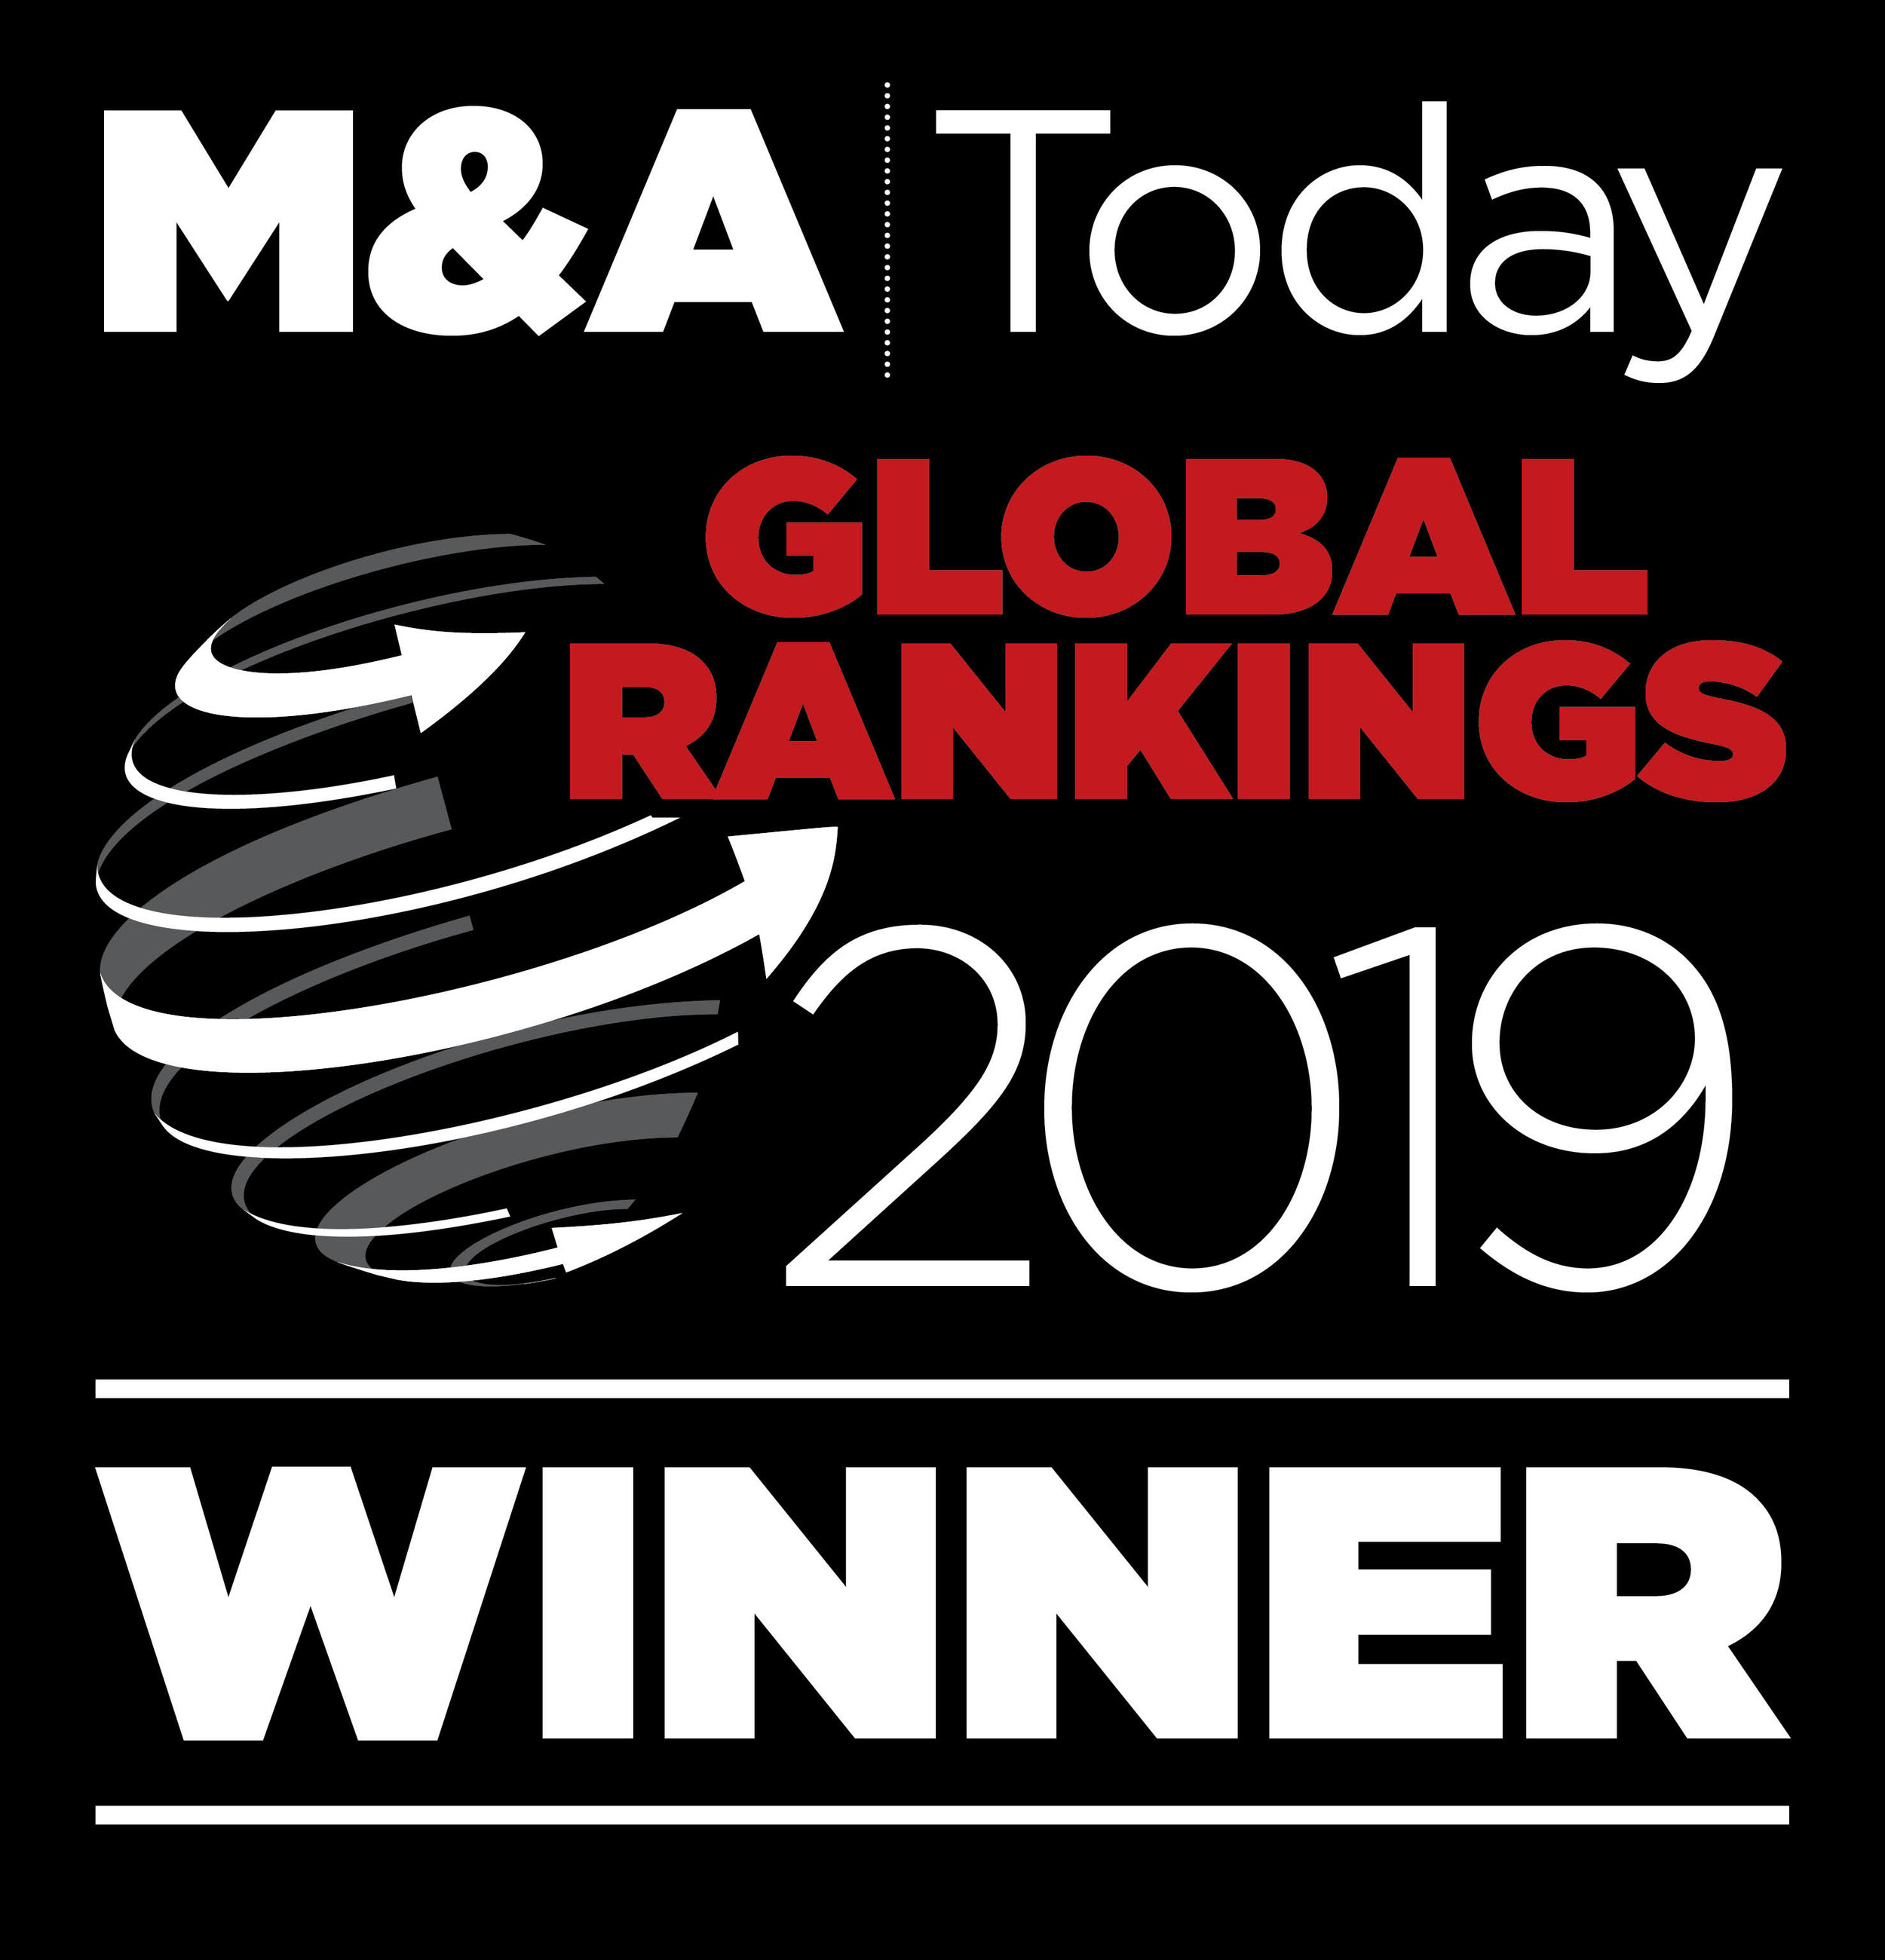 M&A Today Global rankings logo.jpg